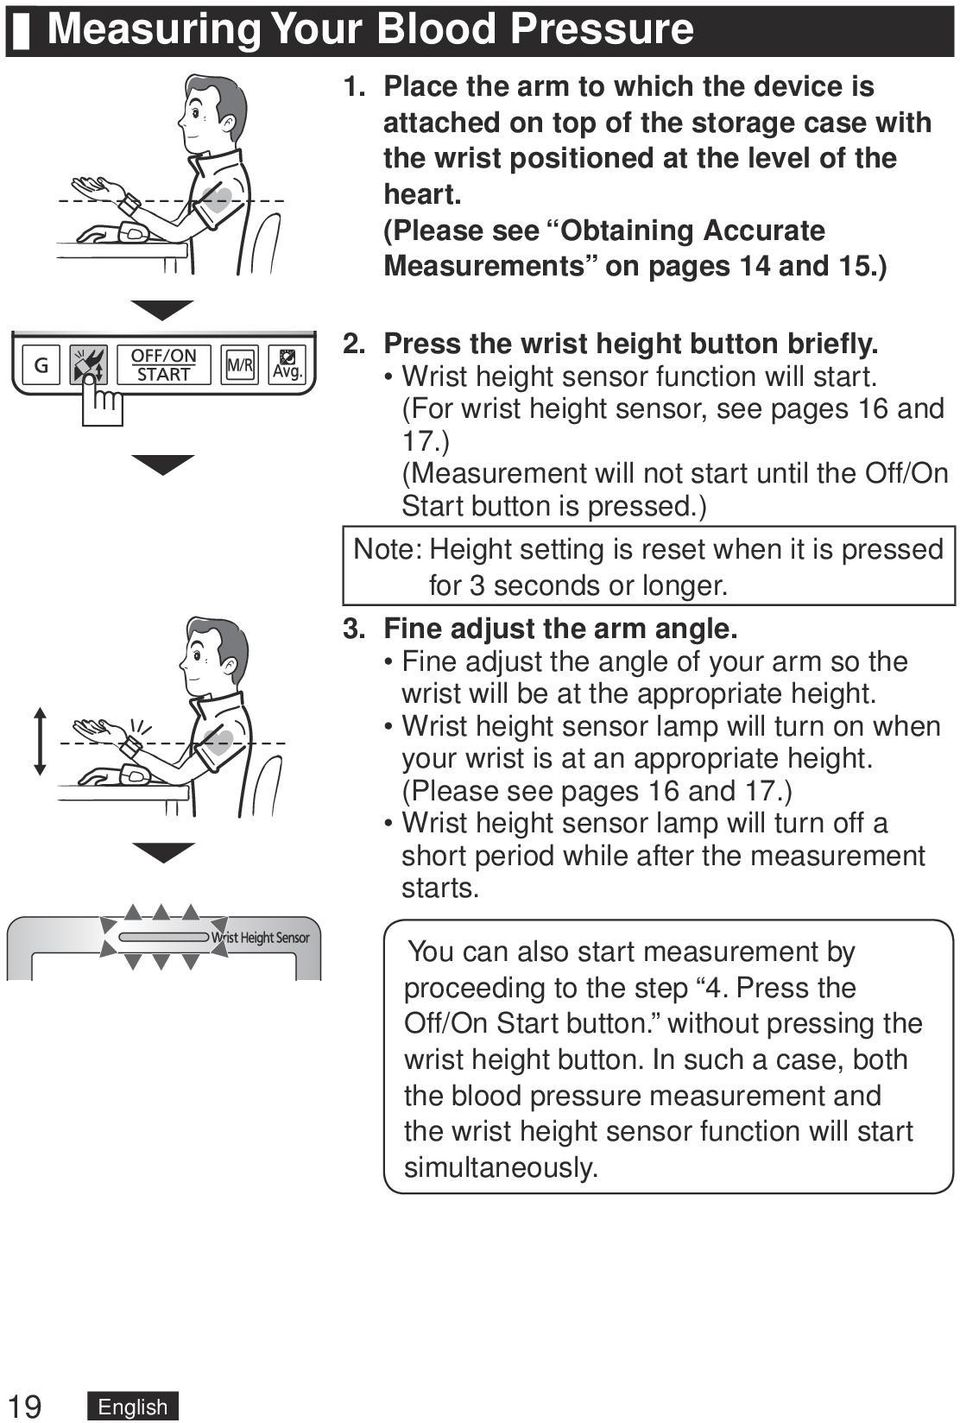 ) (Measurement will not start until the Off/On Start button is pressed.) Note: Height setting is reset when it is pressed for 3 seconds or longer. 3. Fine adjust the arm angle.